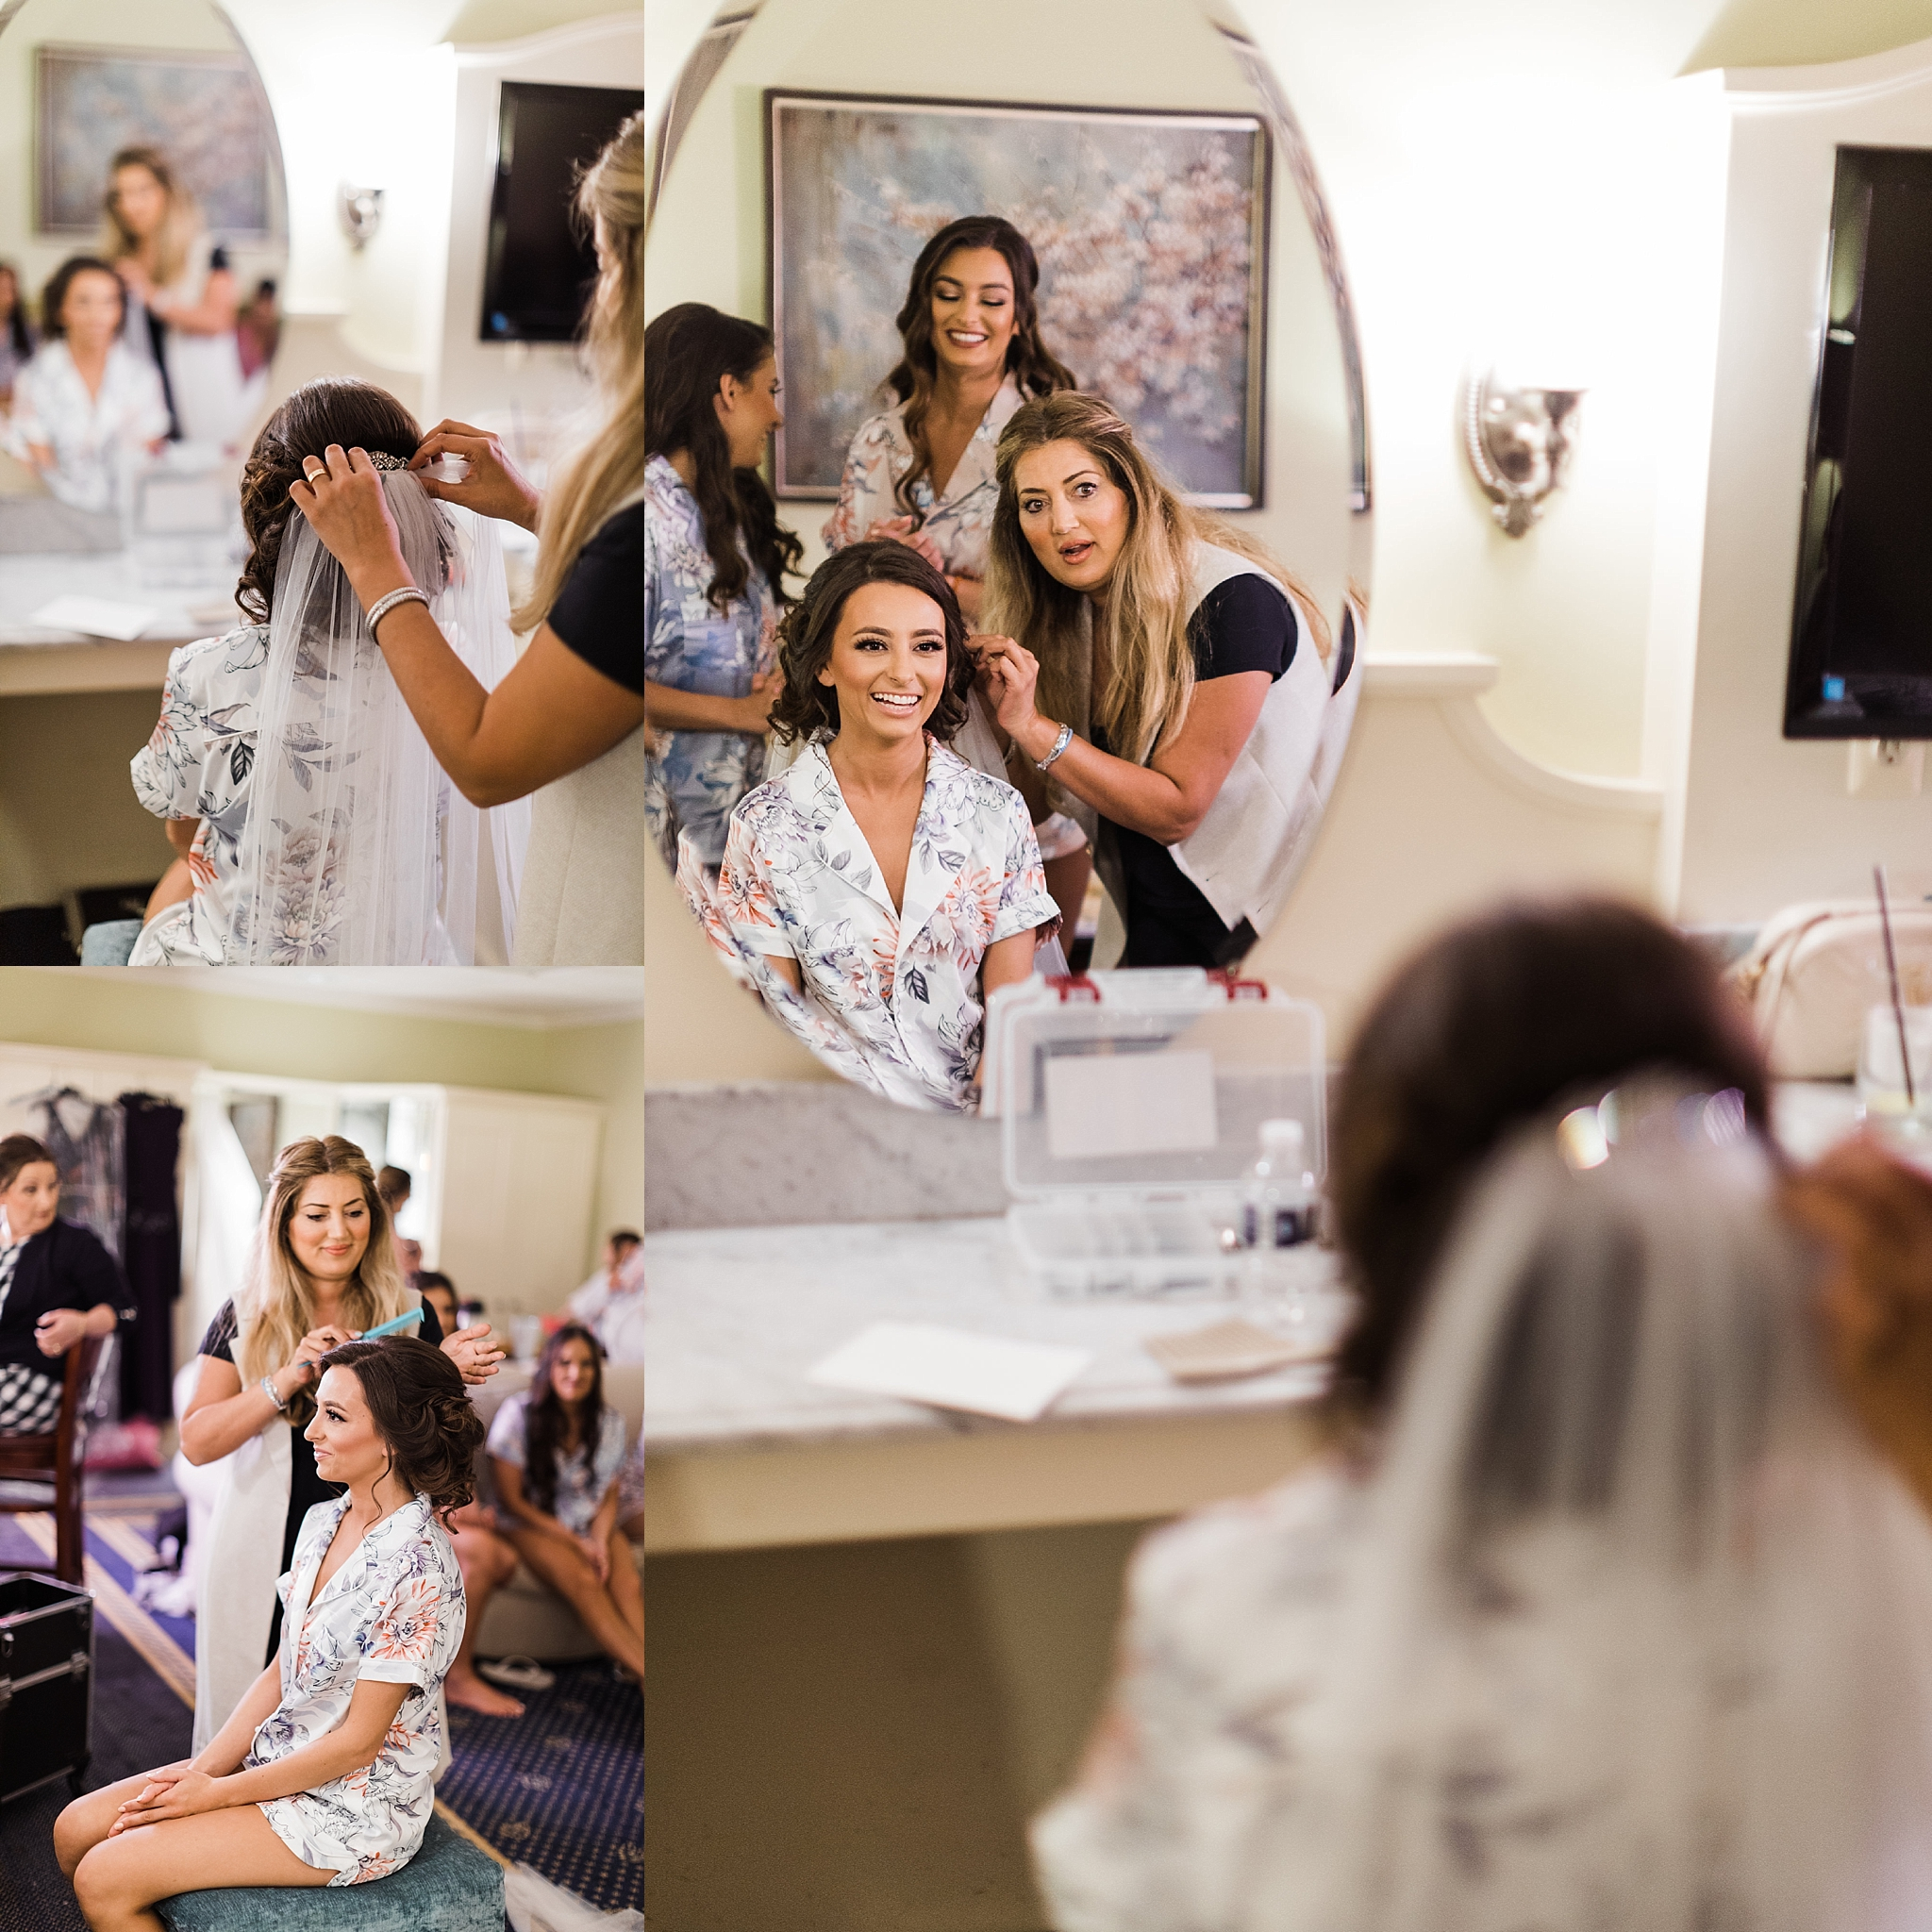 Bride getting ready, traverse city wedding photography Rockhill Studio, northern michigan,